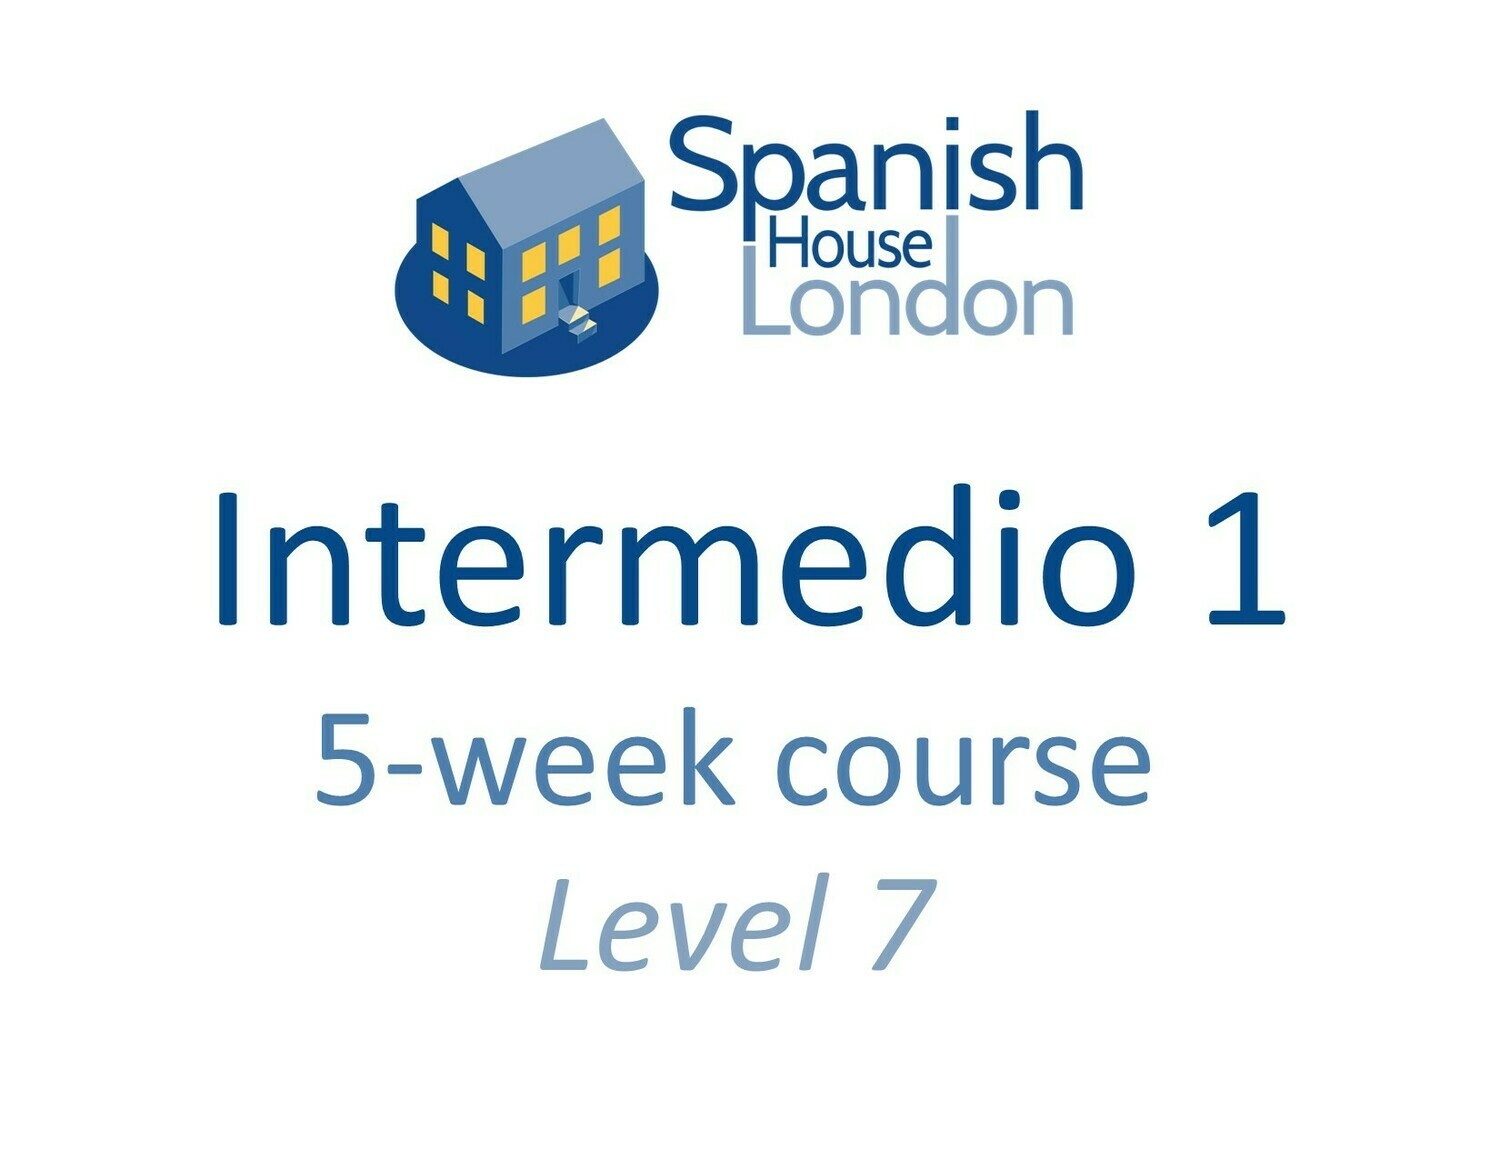 Intermedio 1 Course starting on 1st December at 7.30pm